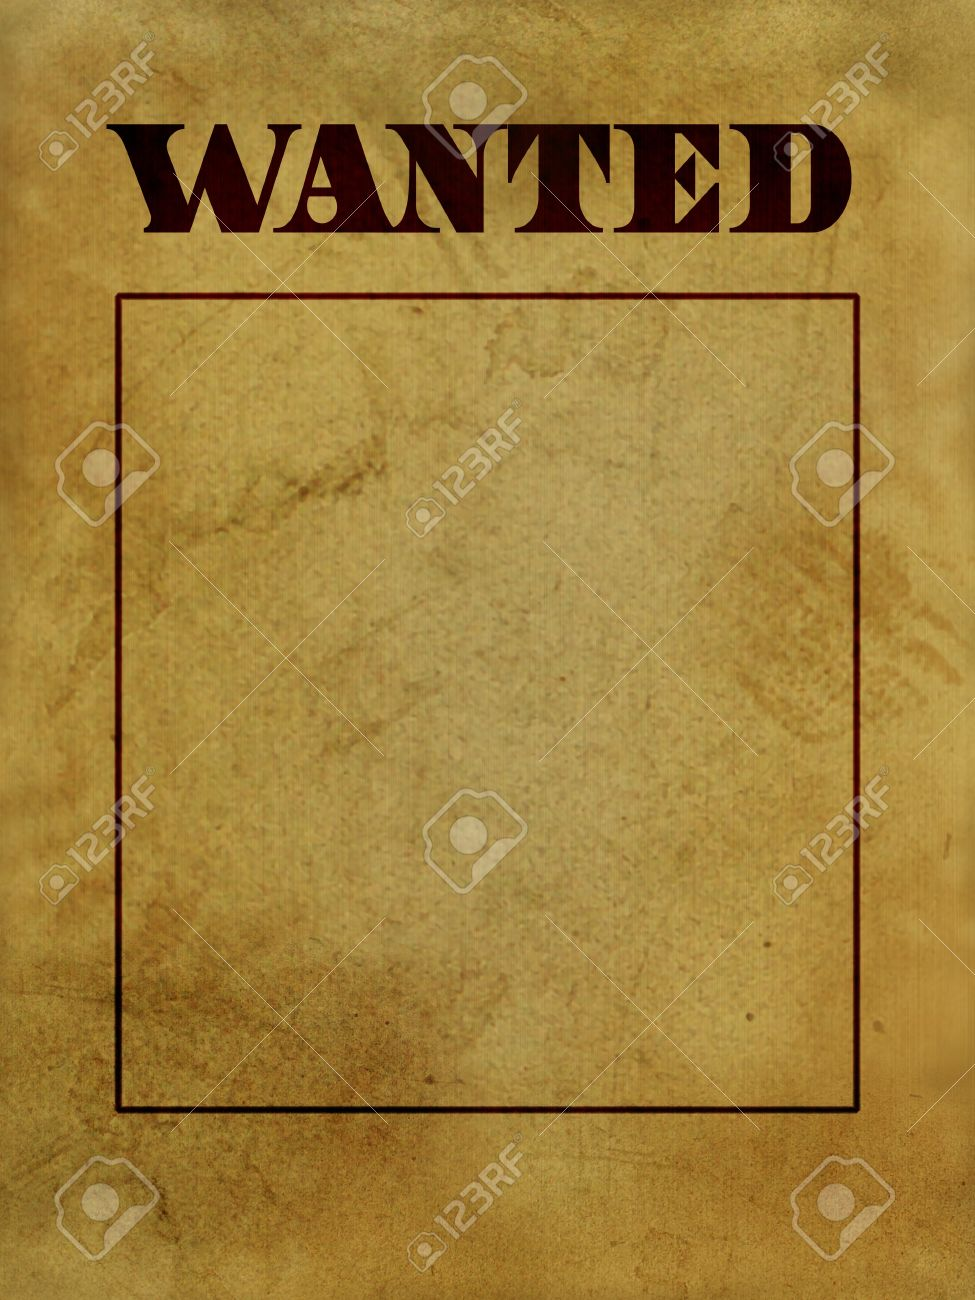 Texure Or Background Of Old West Wanted Poster Photo – Picture of a Wanted Poster